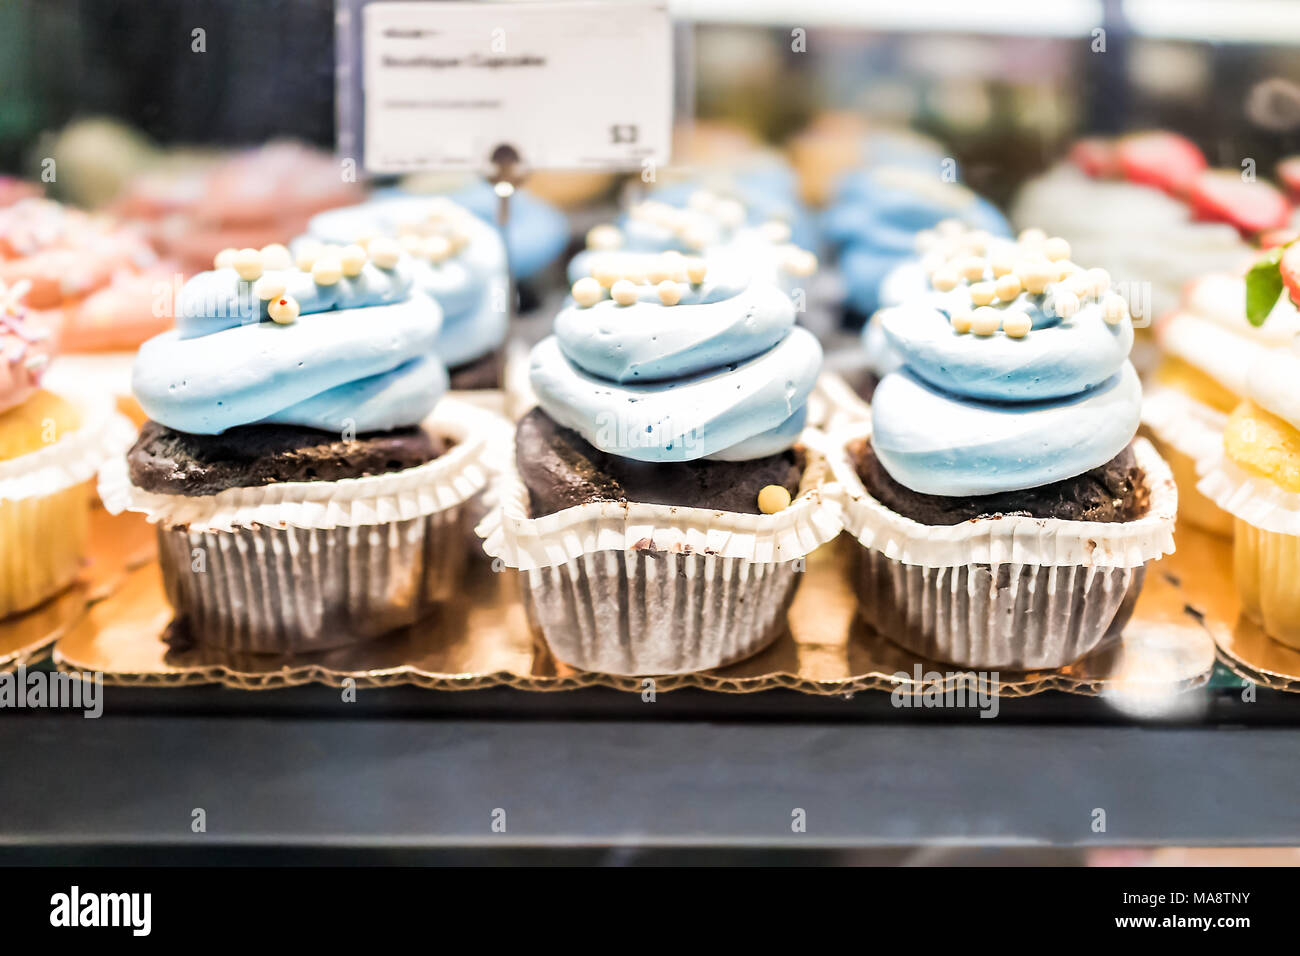 Macro Closeup Of Chocolate Cupcakes On Display In Bakery In Muffin